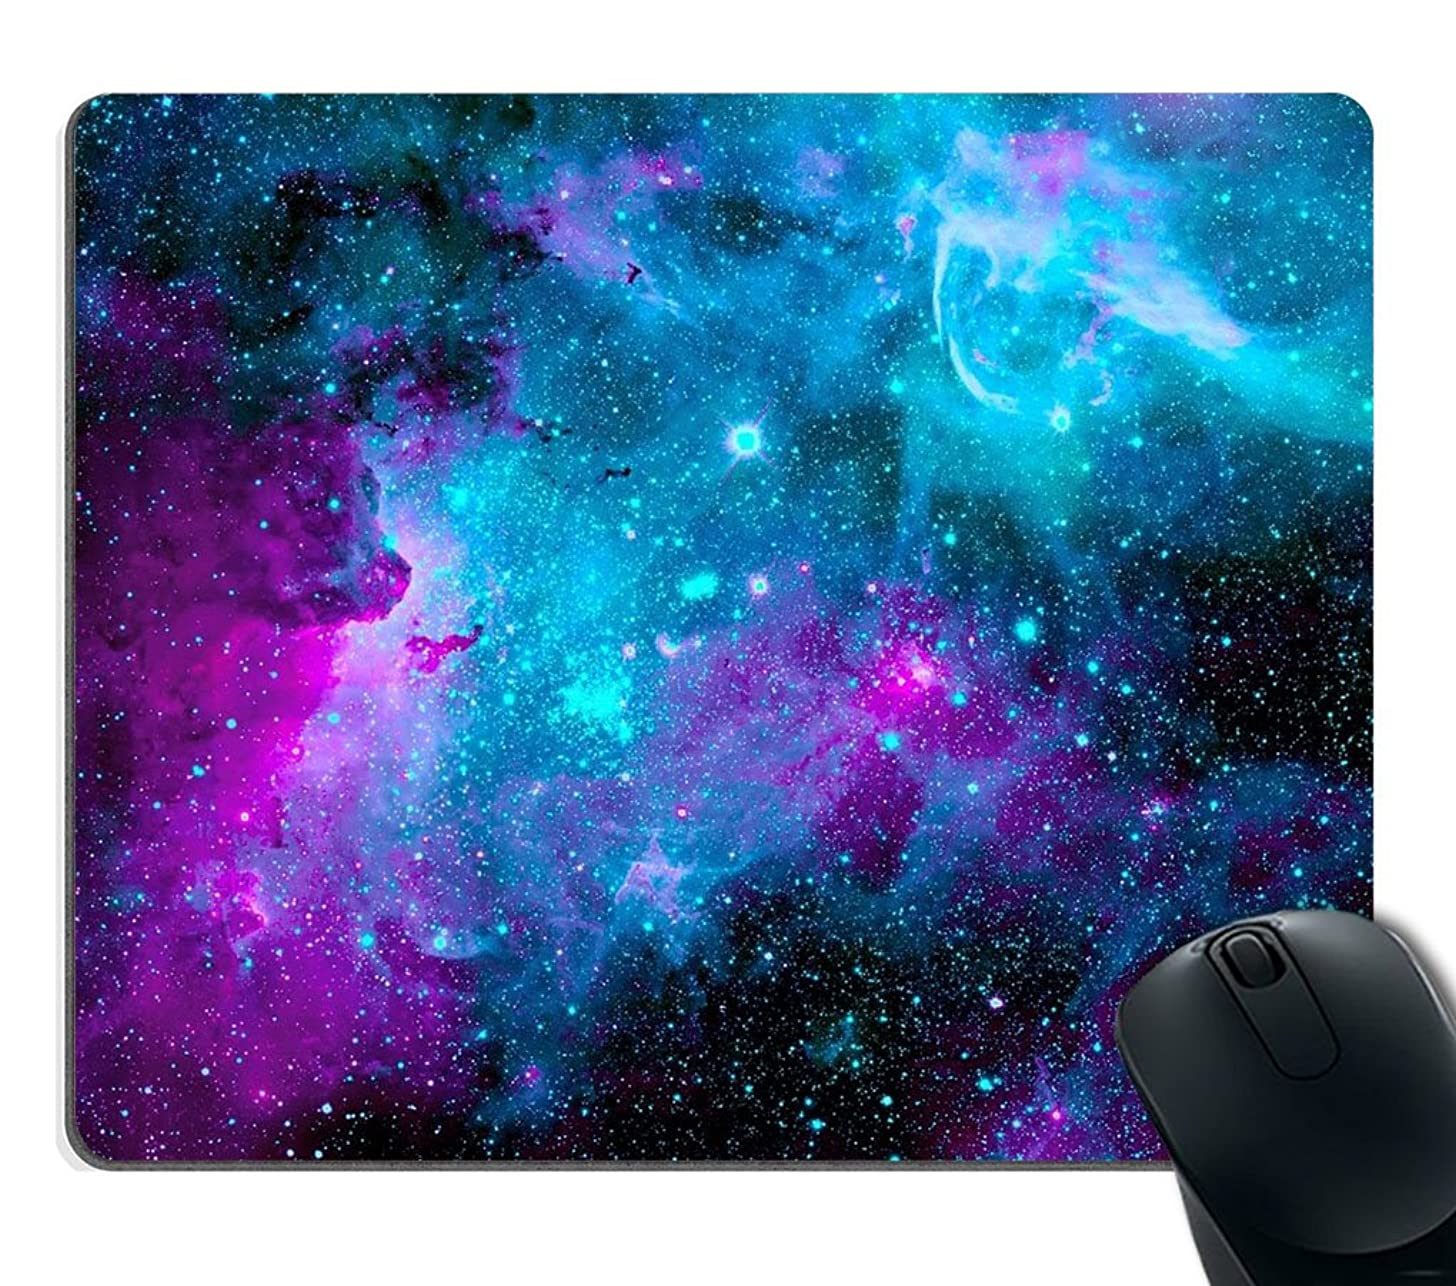 Smooffly Mouse Pad pad-001 Galaxy Customized Rectangle Non-Slip Rubber Mousepad Gaming Mouse Pad